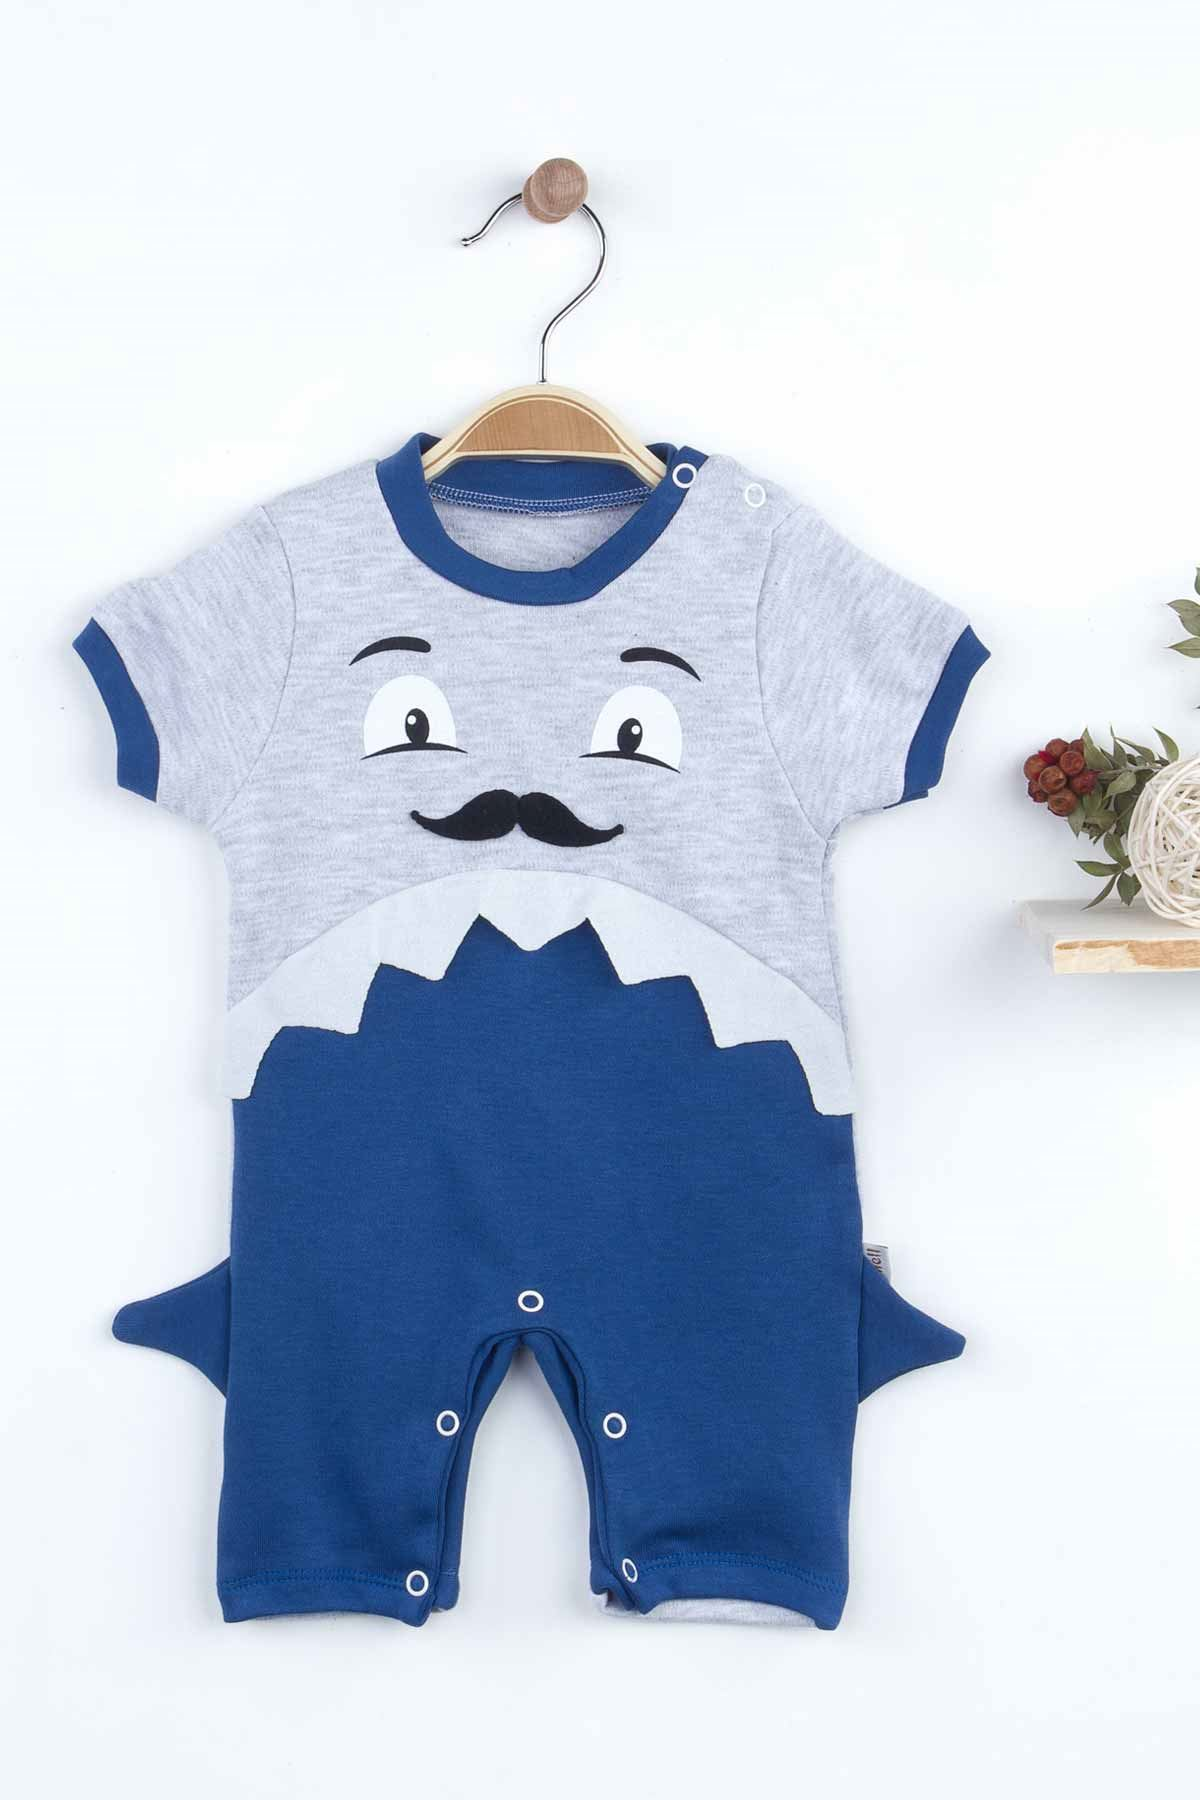 Navy Blue Baby Boy Rompers Sea Summer Fashion 2021 New Season Style Babies Clothes Outfit Cotton Comfortable Underwear for Boys Baby